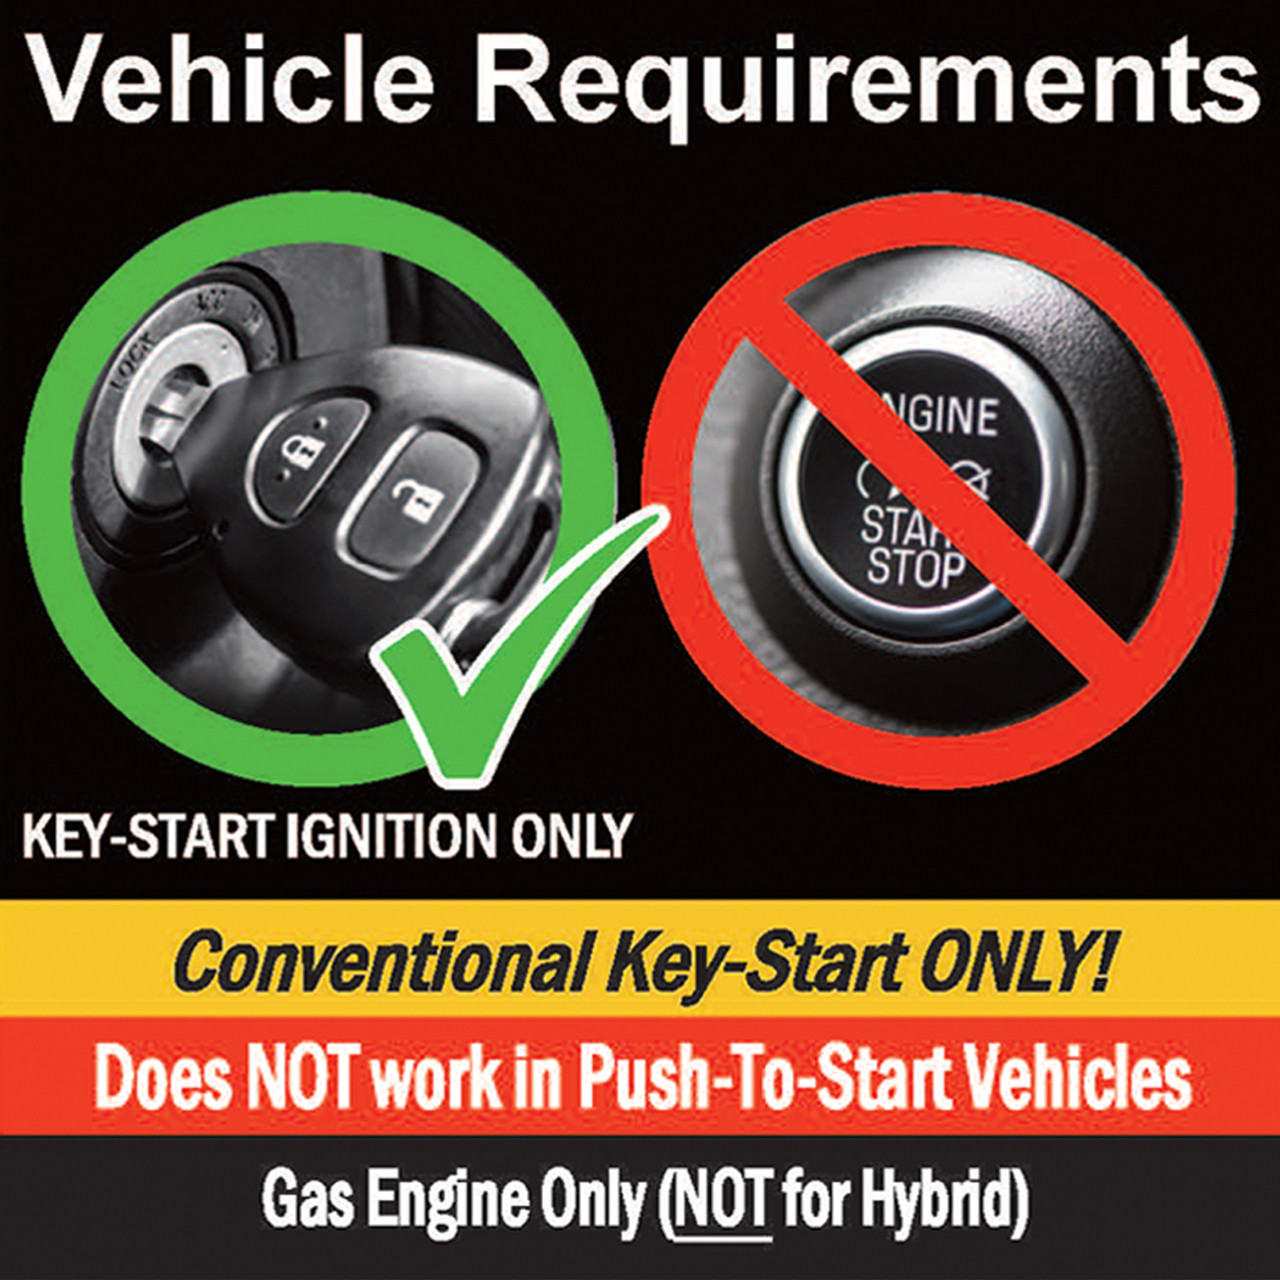 MPC Remote Start With Keyless Entry Kit For 2005-2006 Nissan Altima - Key-to-Start